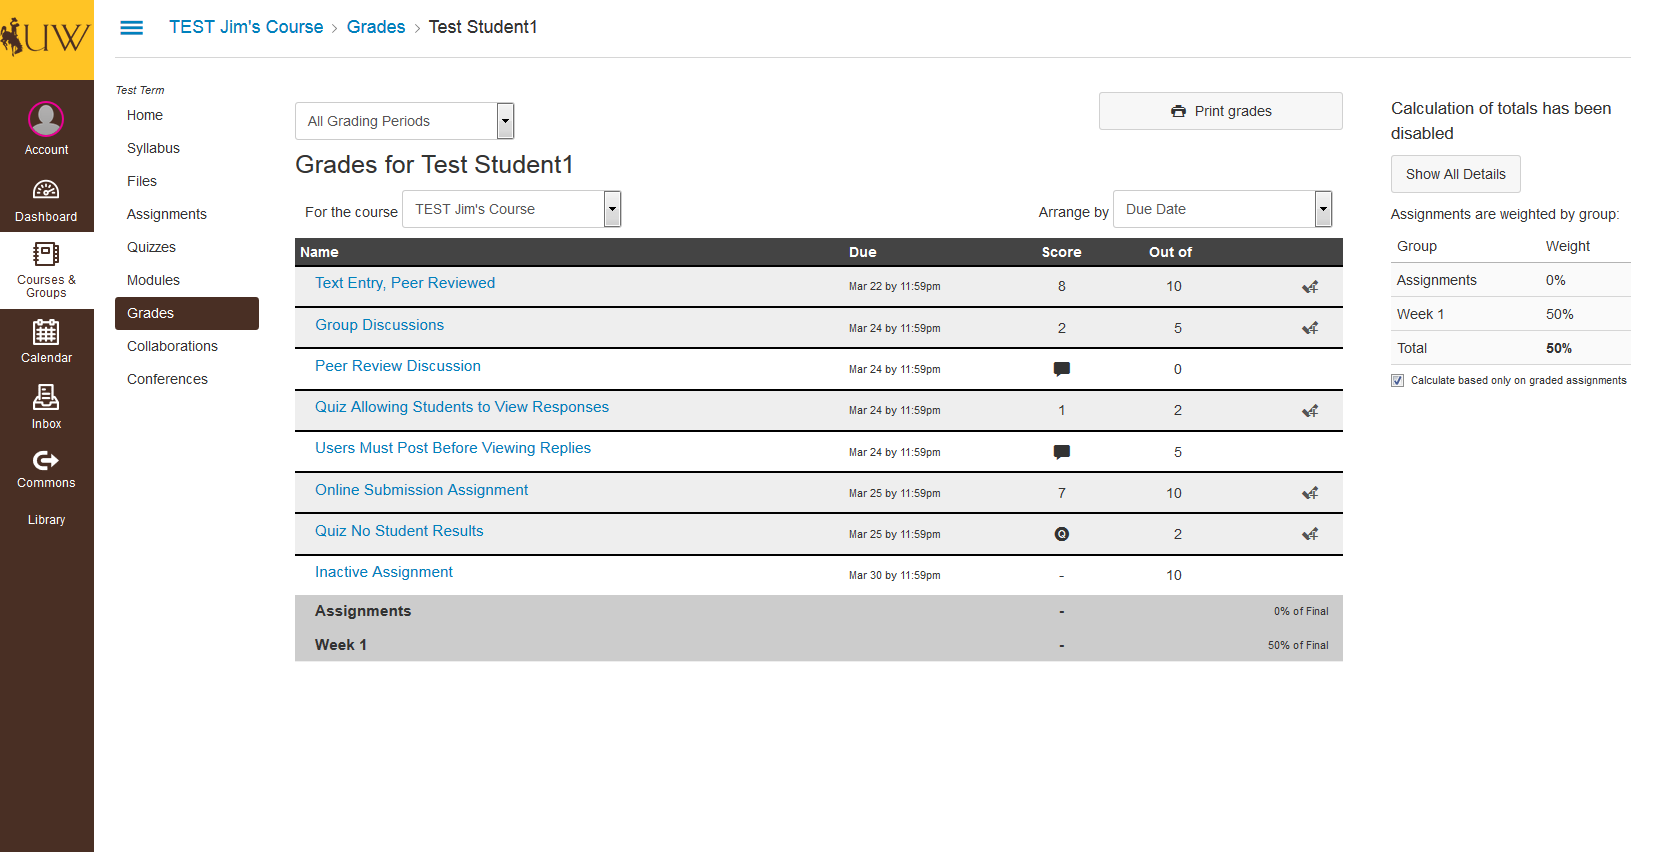 image showing advisor's view of grades tool in wyocourses